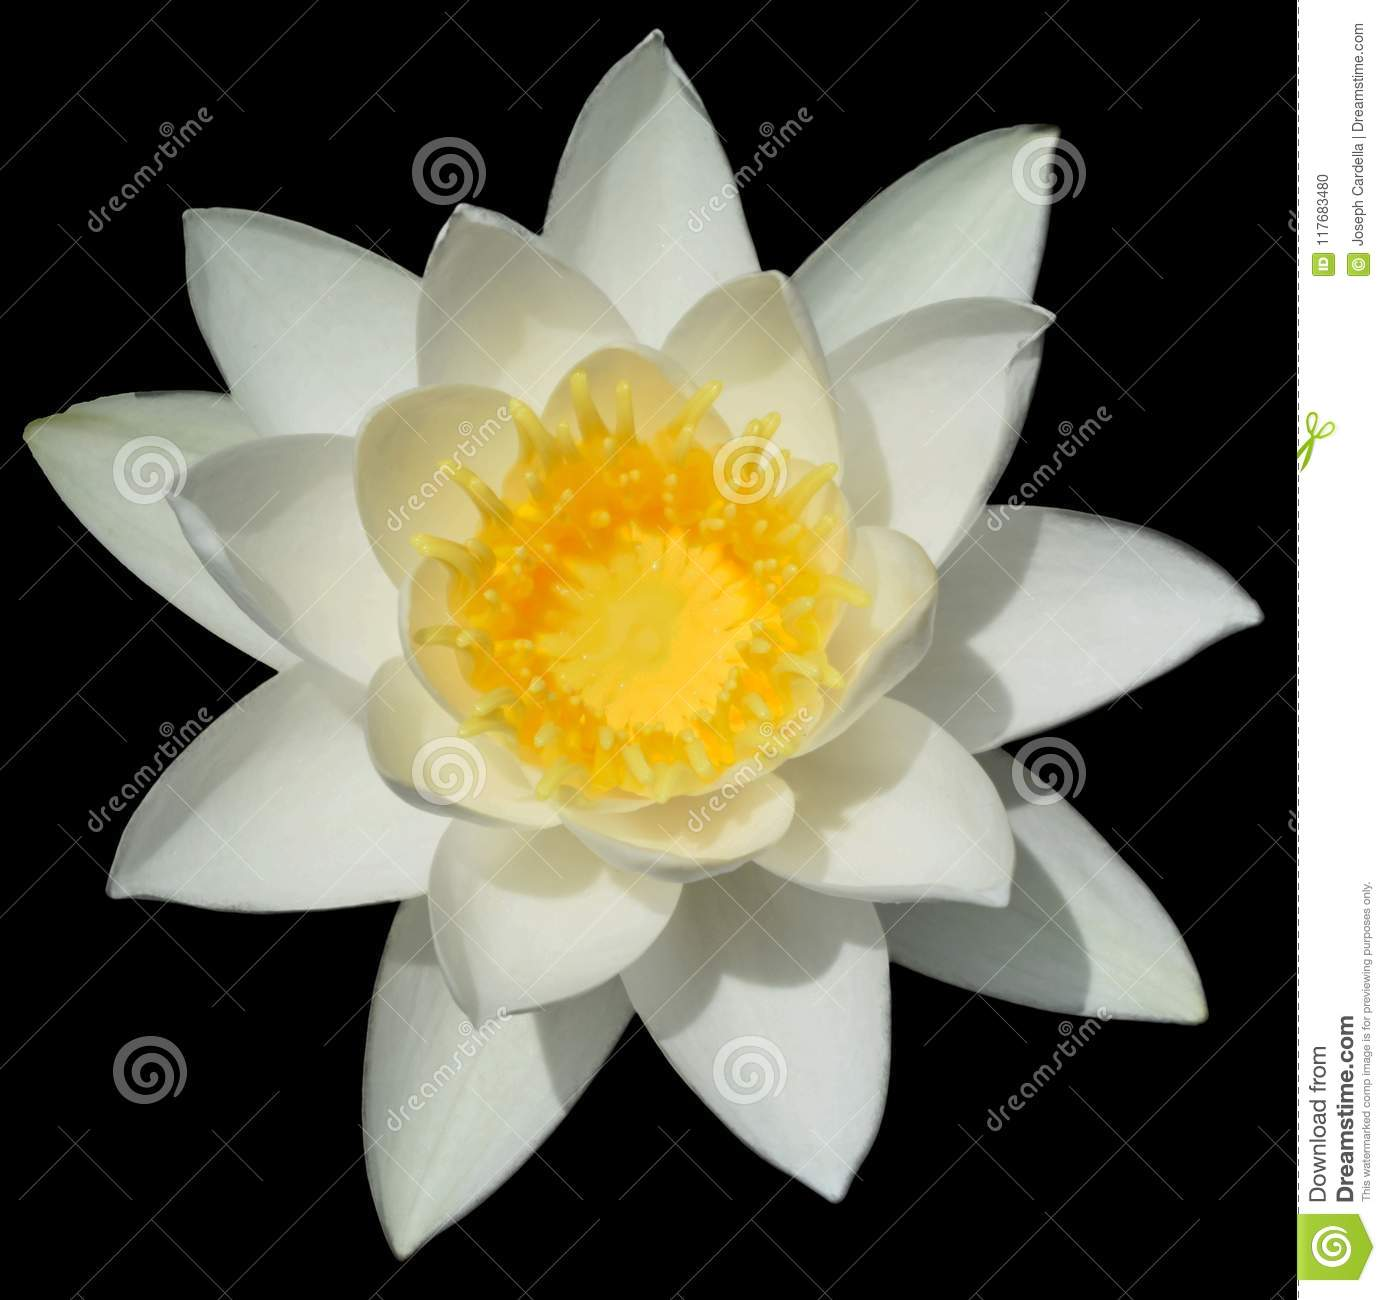 White Lotus Flower With Yellow Center Stock Photo Image Of Bloom